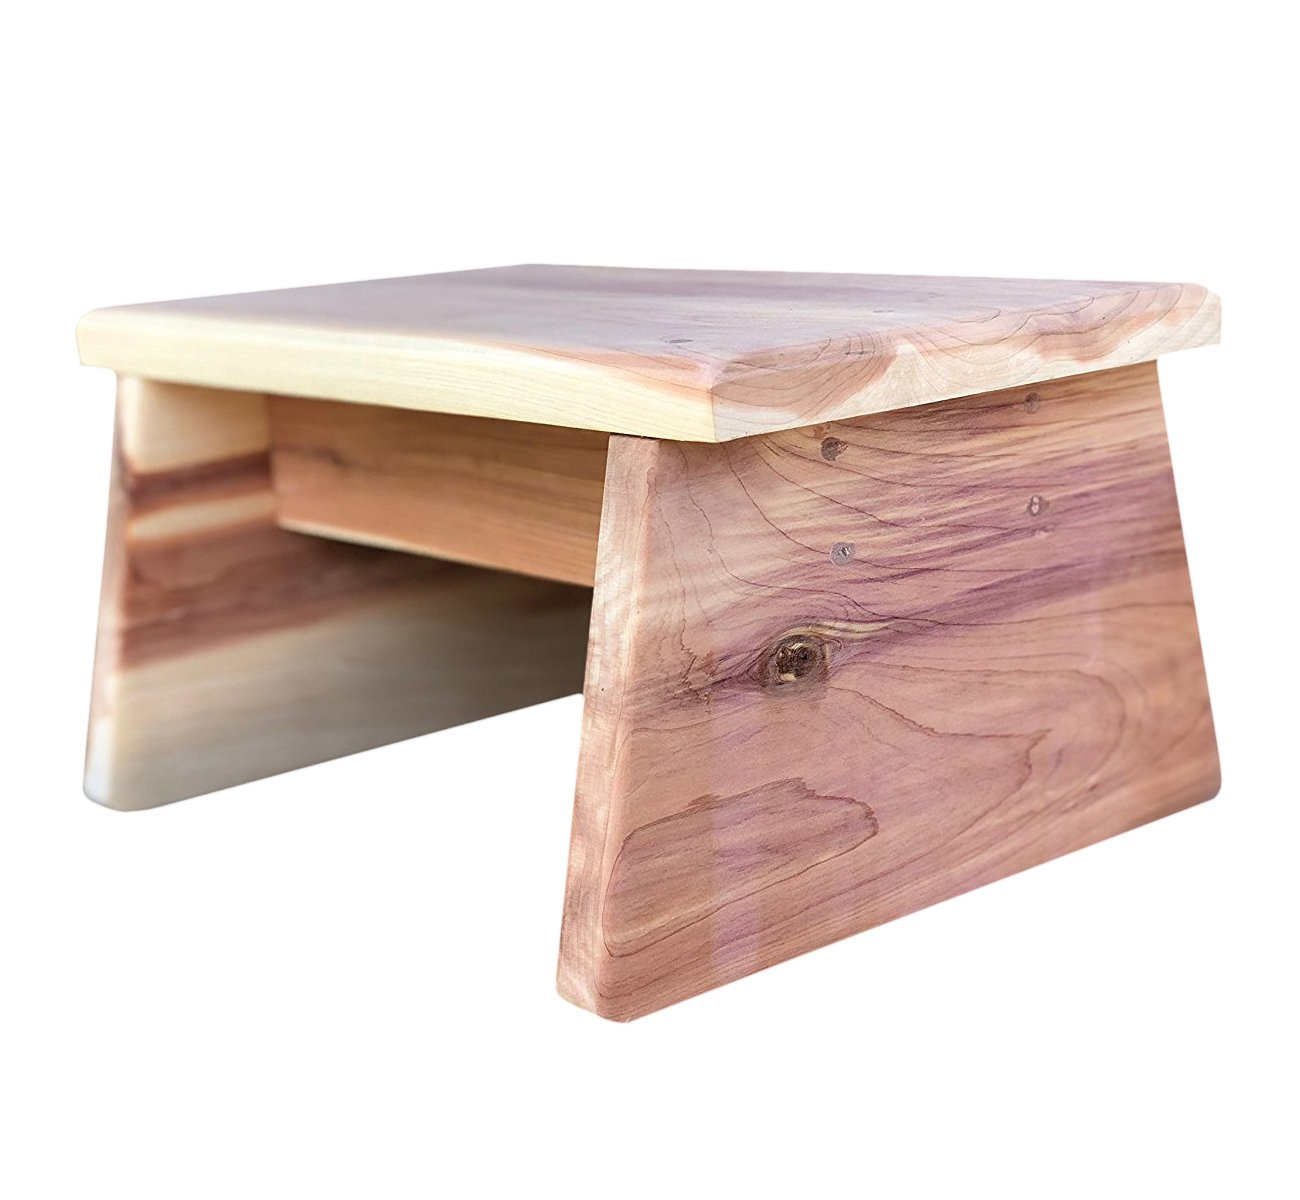 Vundahboah Amish Goods Cedar One Step Stool (Straight Leg Style)